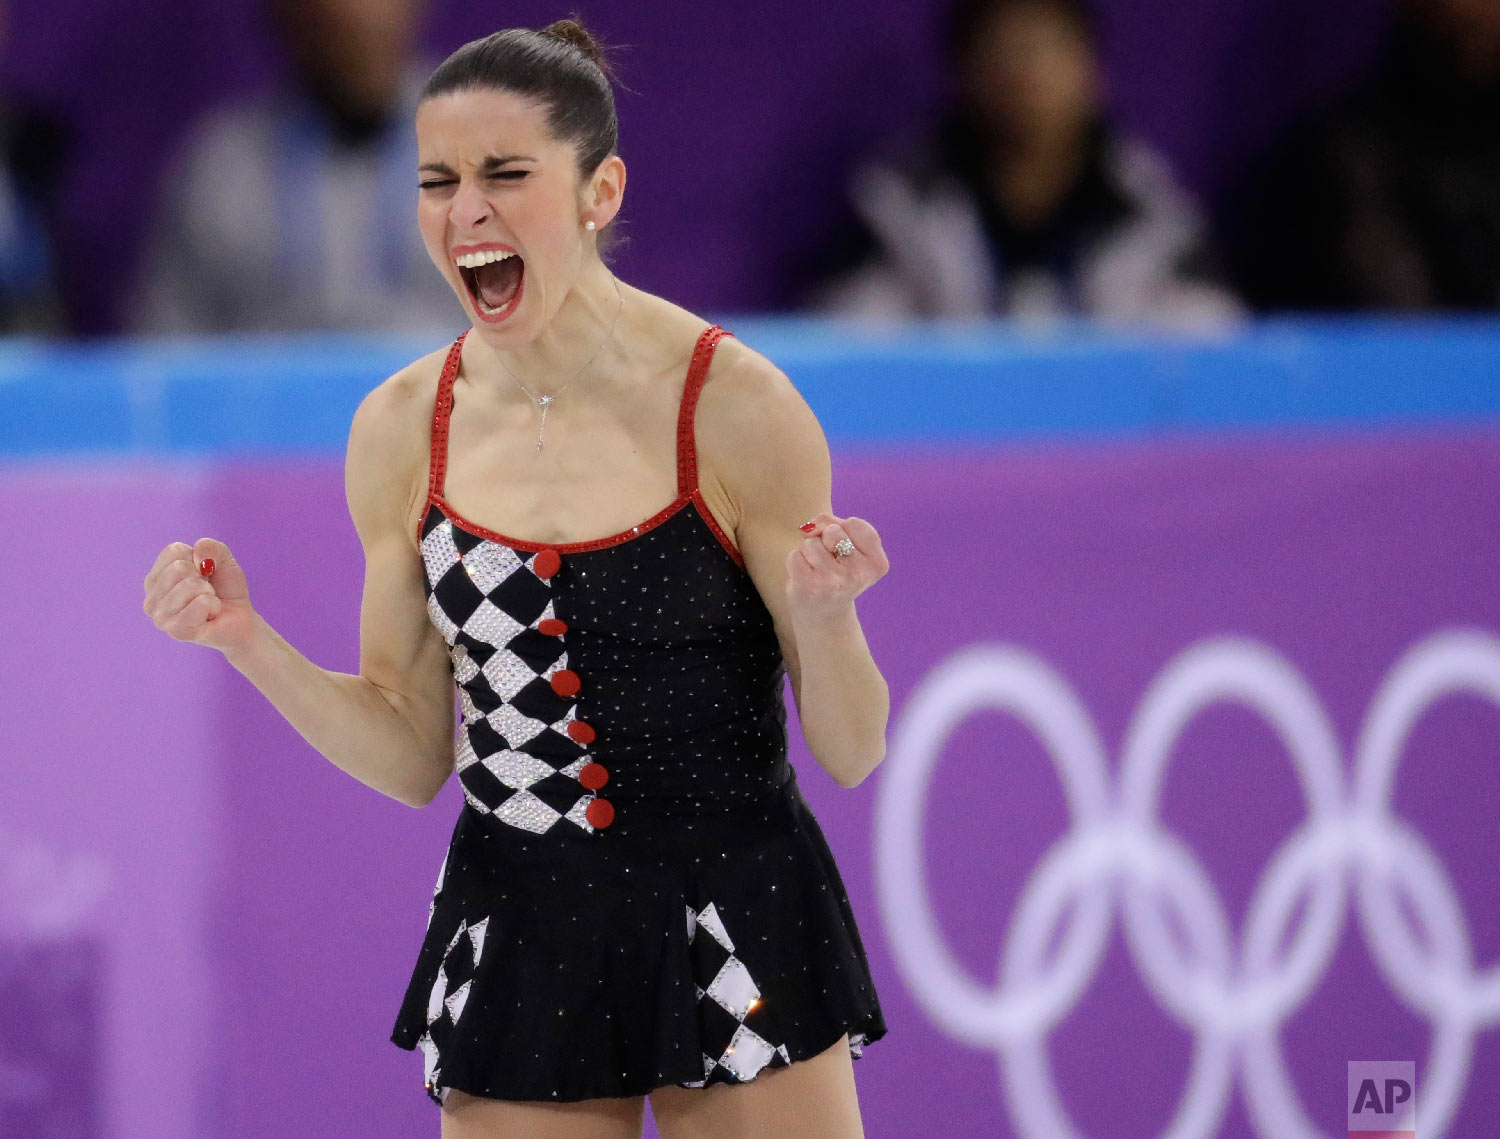 Valentina Marchei of Italy reacts after her and her partner Ondrej Hotarek's performance in the team event pair skating in the Gangneung Ice Arena at the 2018 Winter Olympics in Gangneung, South Korea, Sunday, Feb. 11, 2018. (AP Photo/Bernat Armangue)